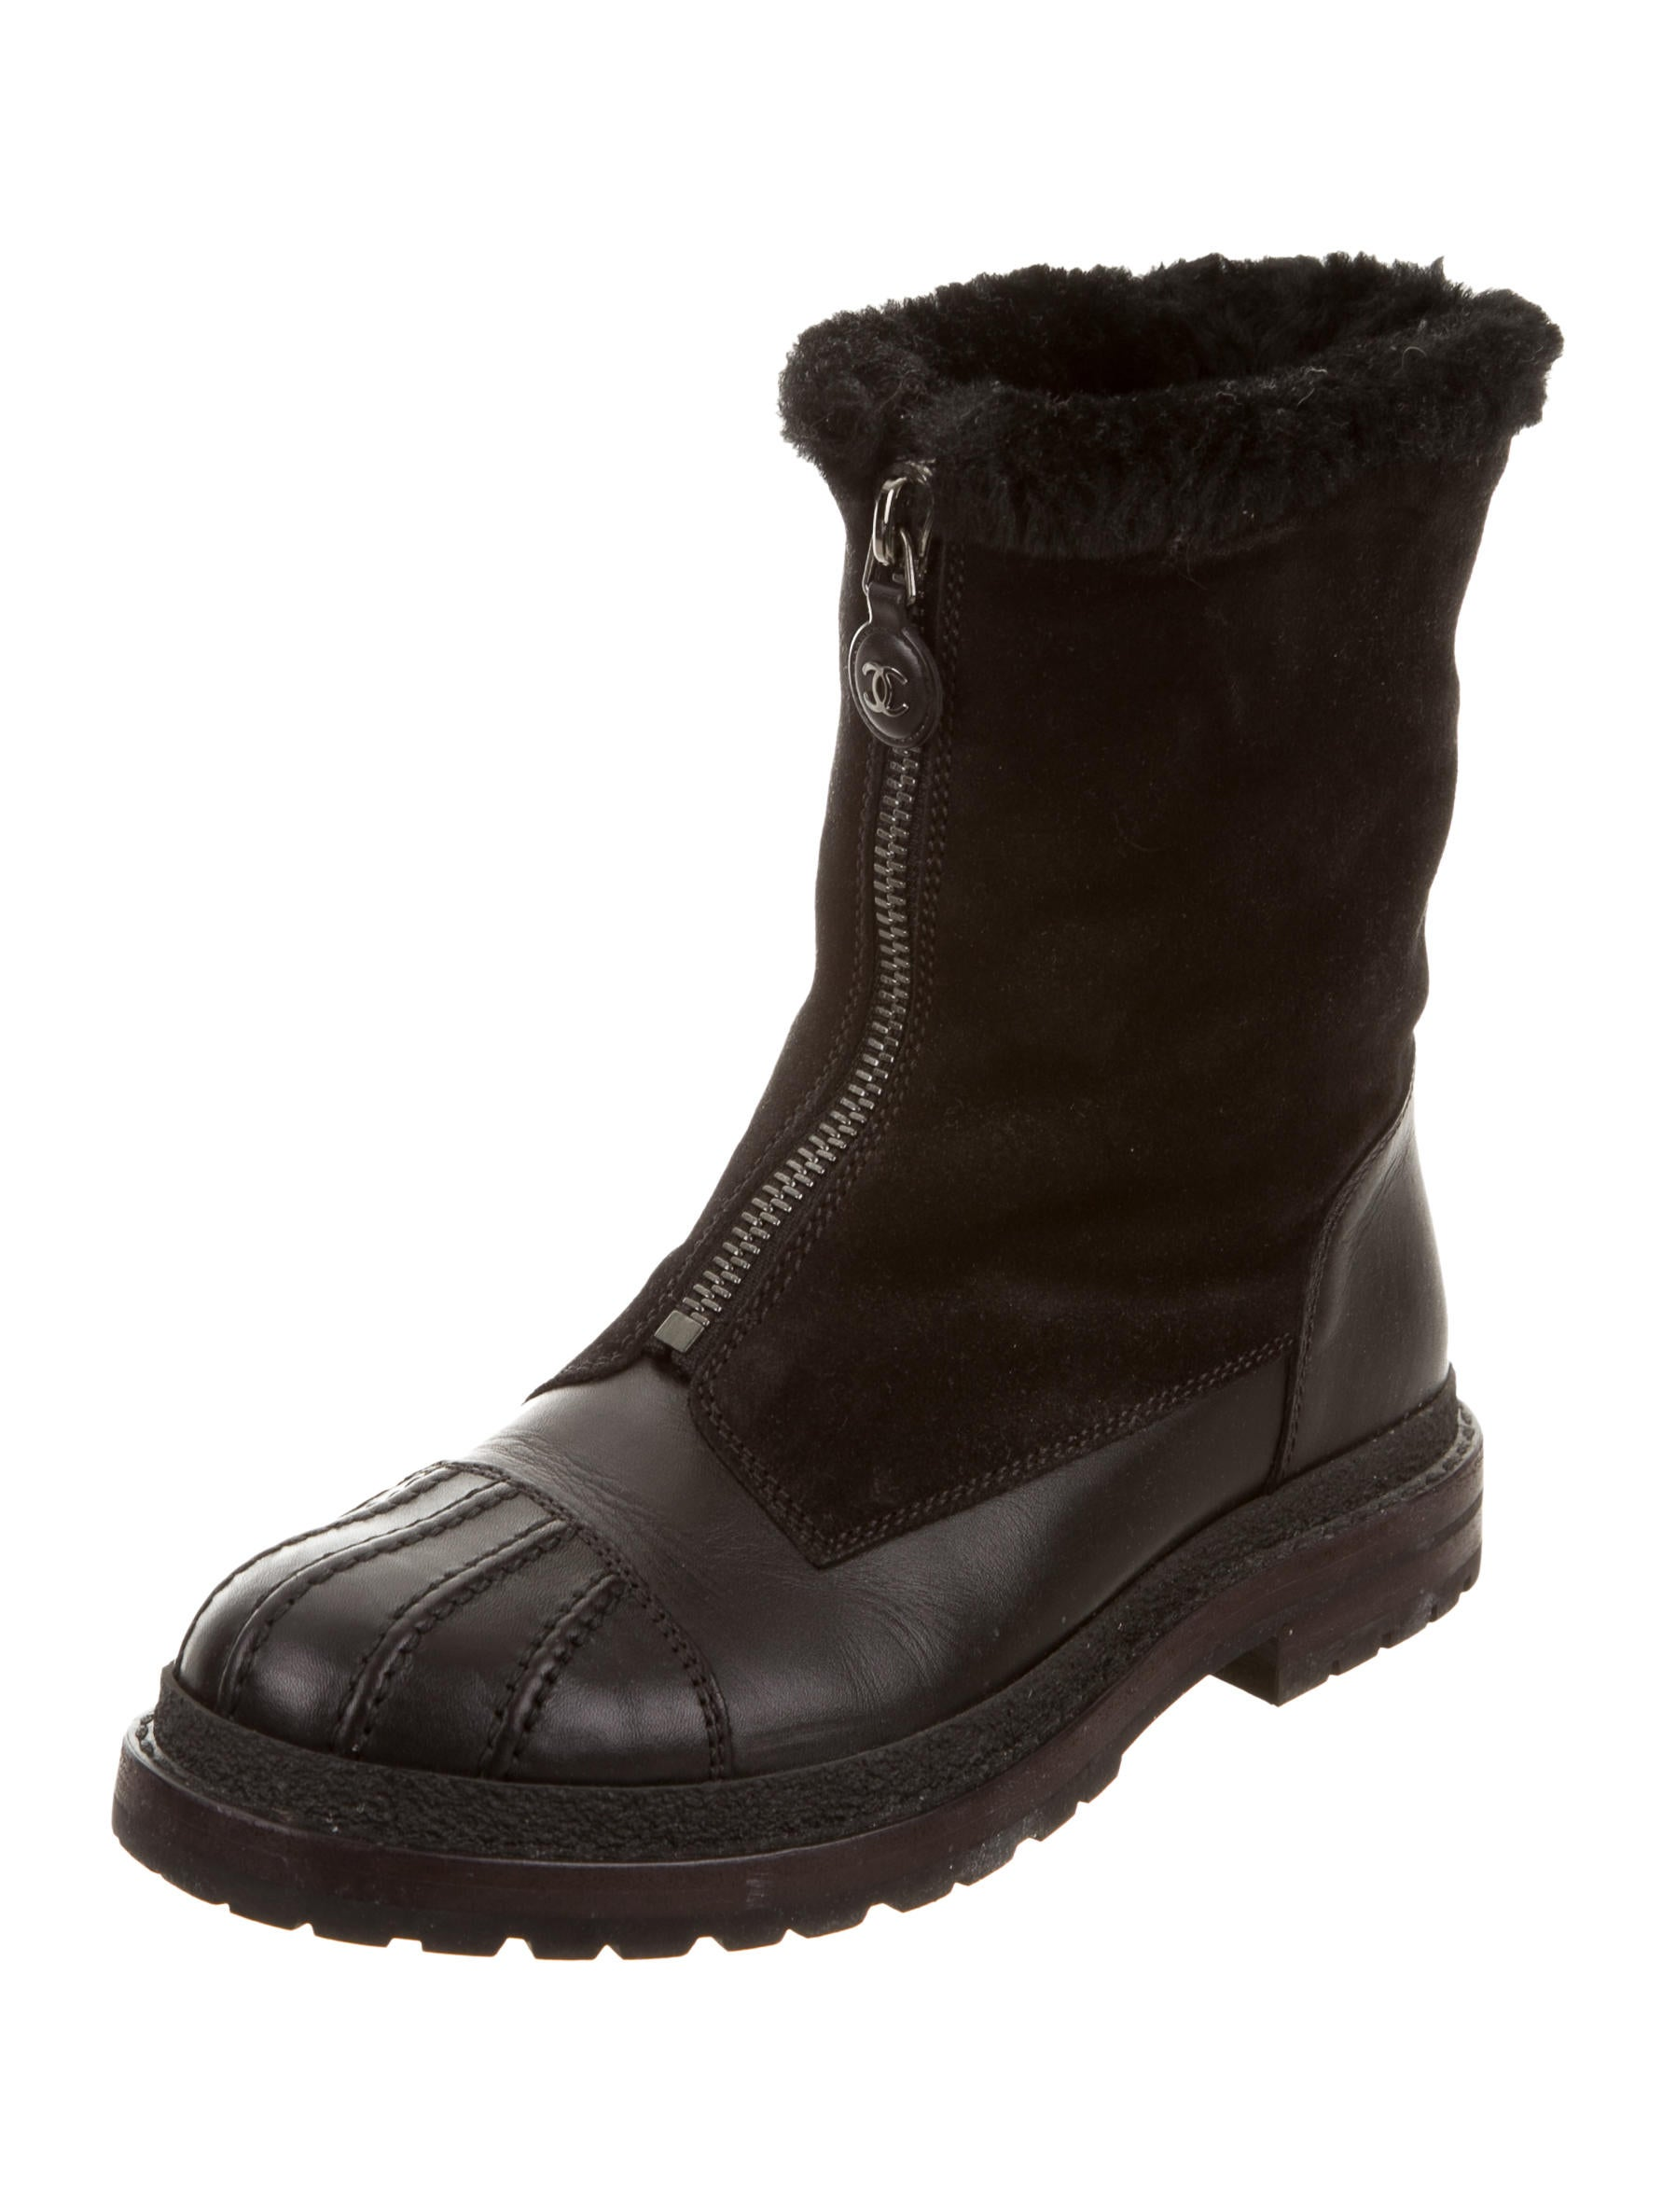 chanel leather snow boots shoes cha161258 the realreal